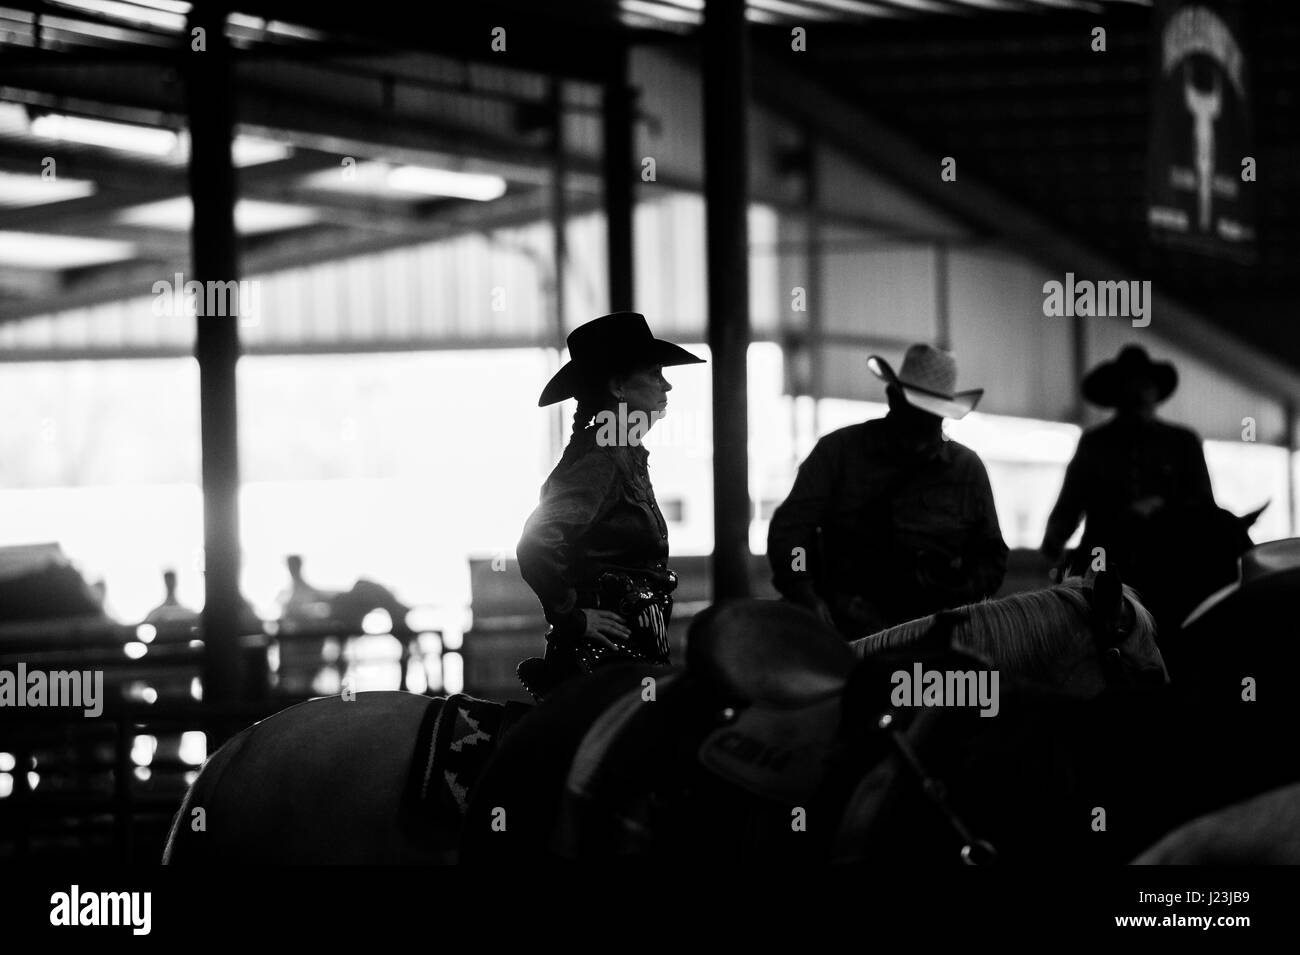 Salado, Texas, USA. Cowboy Mounted Shooting Event Texas. Riders silhouette before the competition. - Stock Image